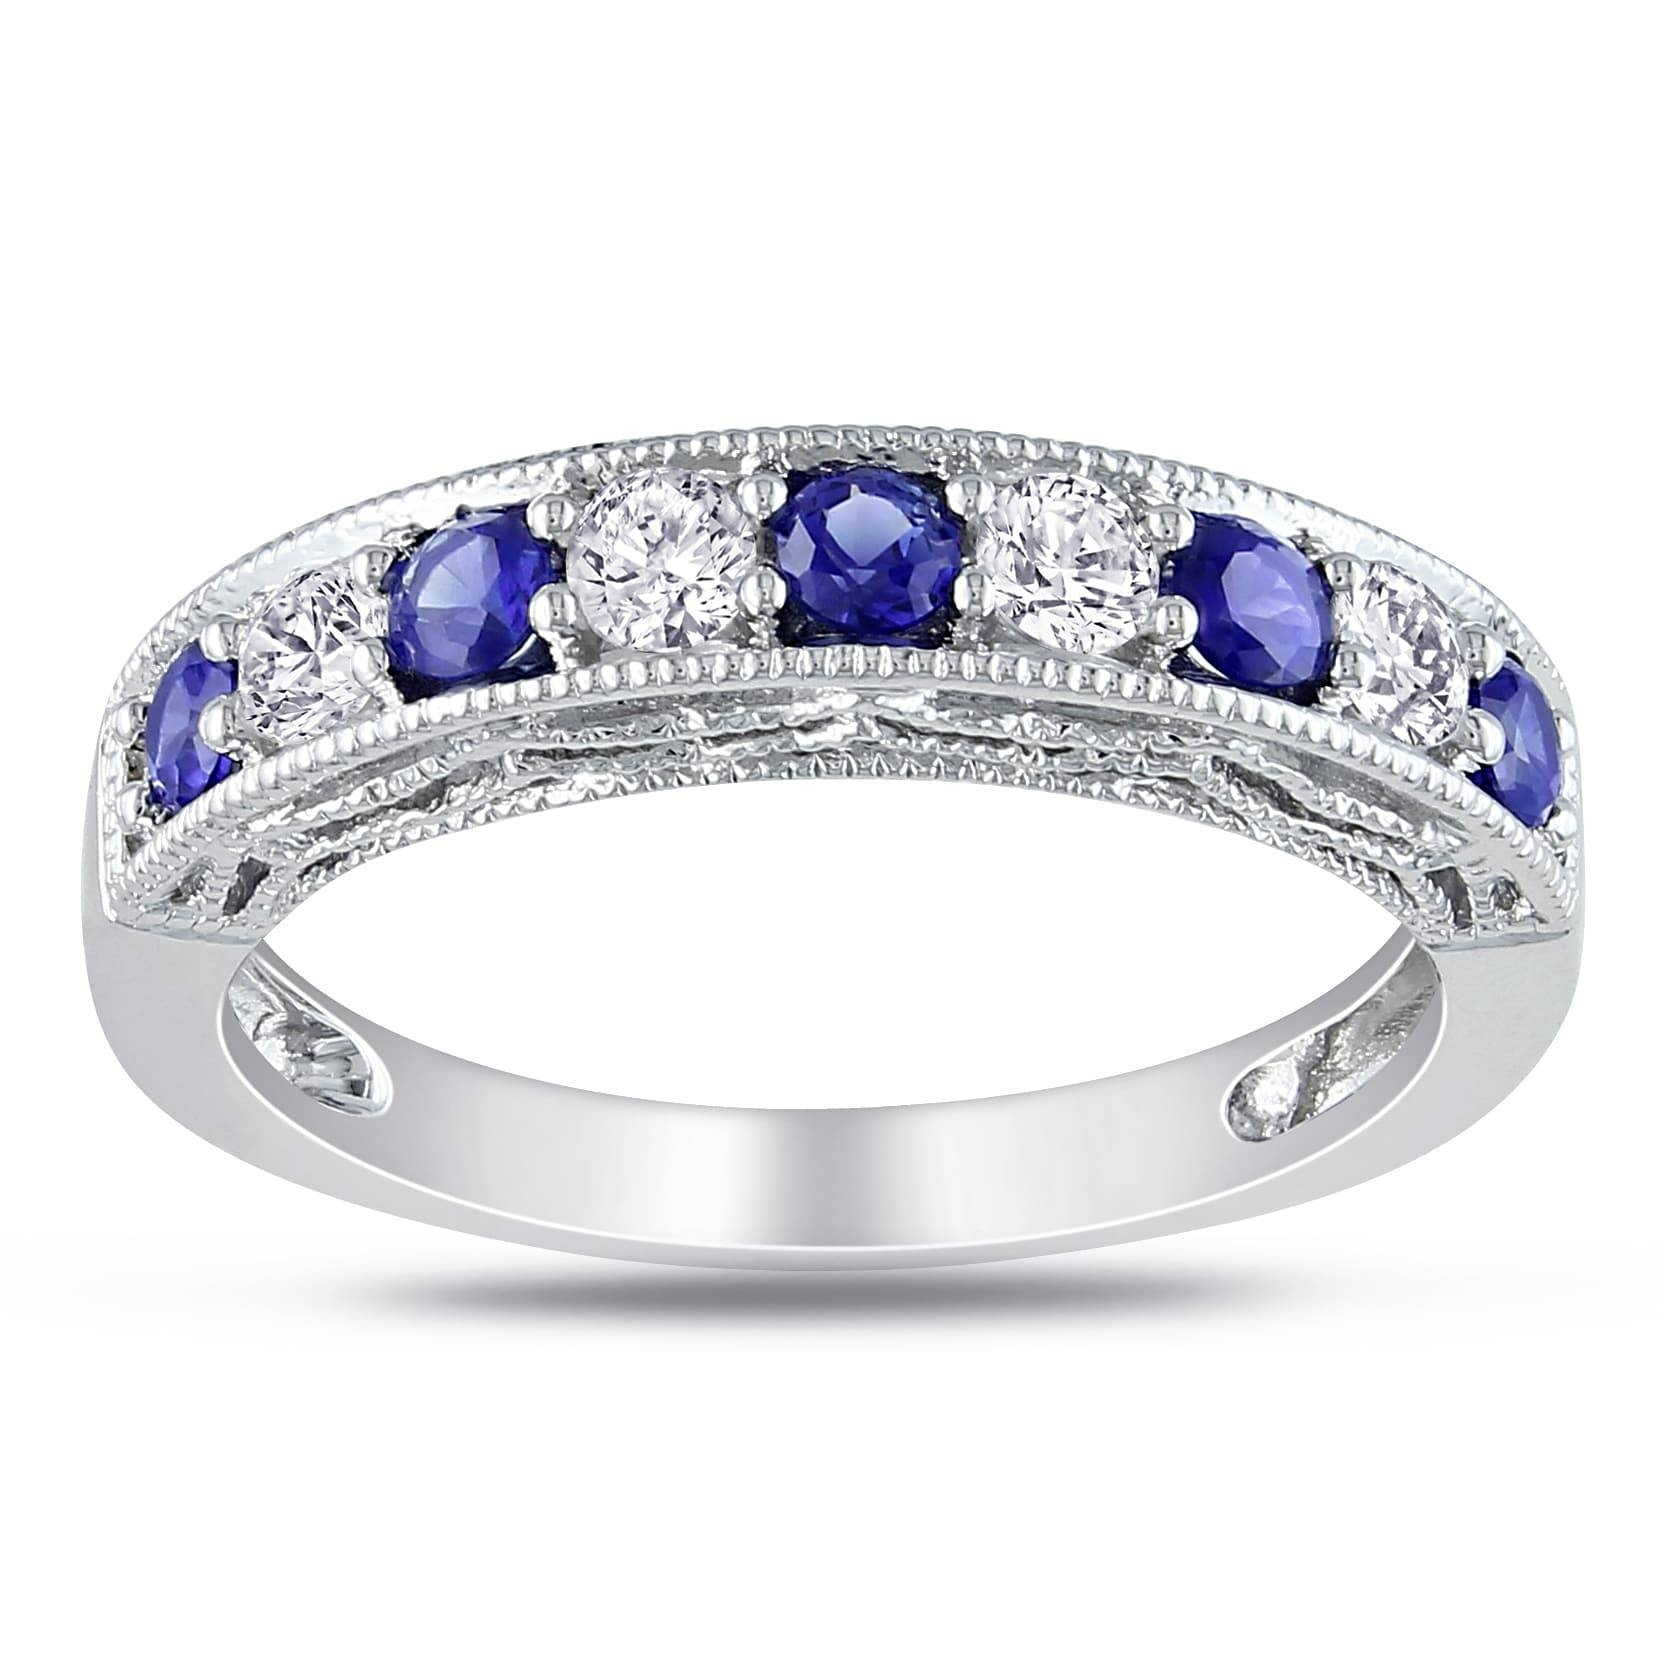 Miadora Sterling Silver White Sapphire And Gemstone Stackable Throughout Recent Sapphire Anniversary Rings (View 14 of 25)